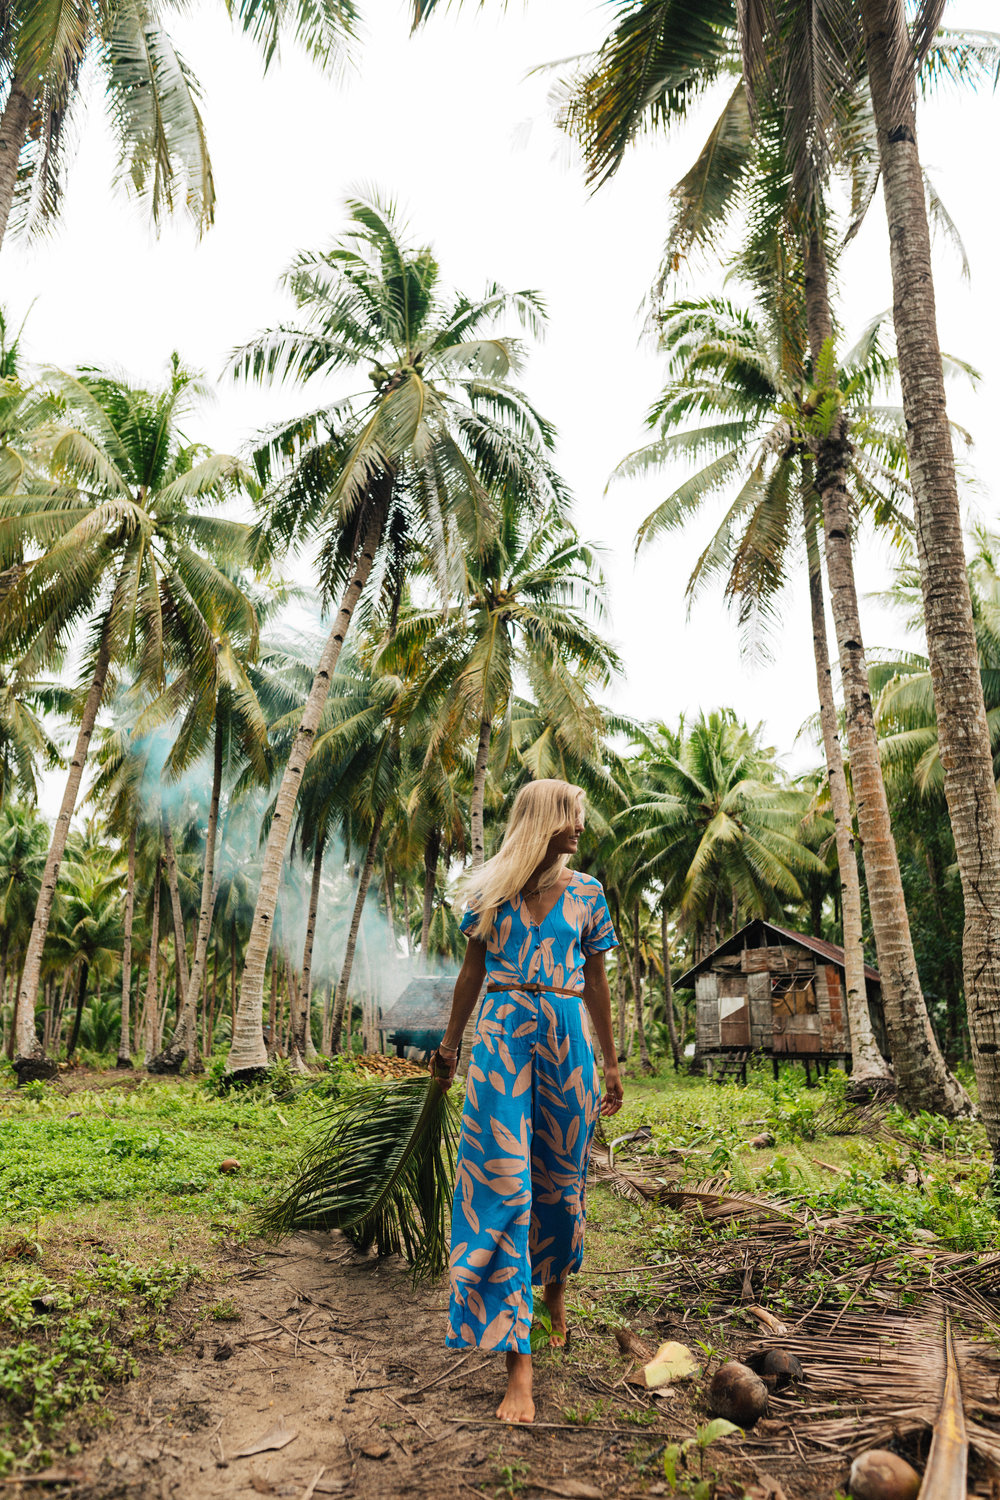 Island palm vibes in the villages on Siargao (outfit: Mister Zimi)